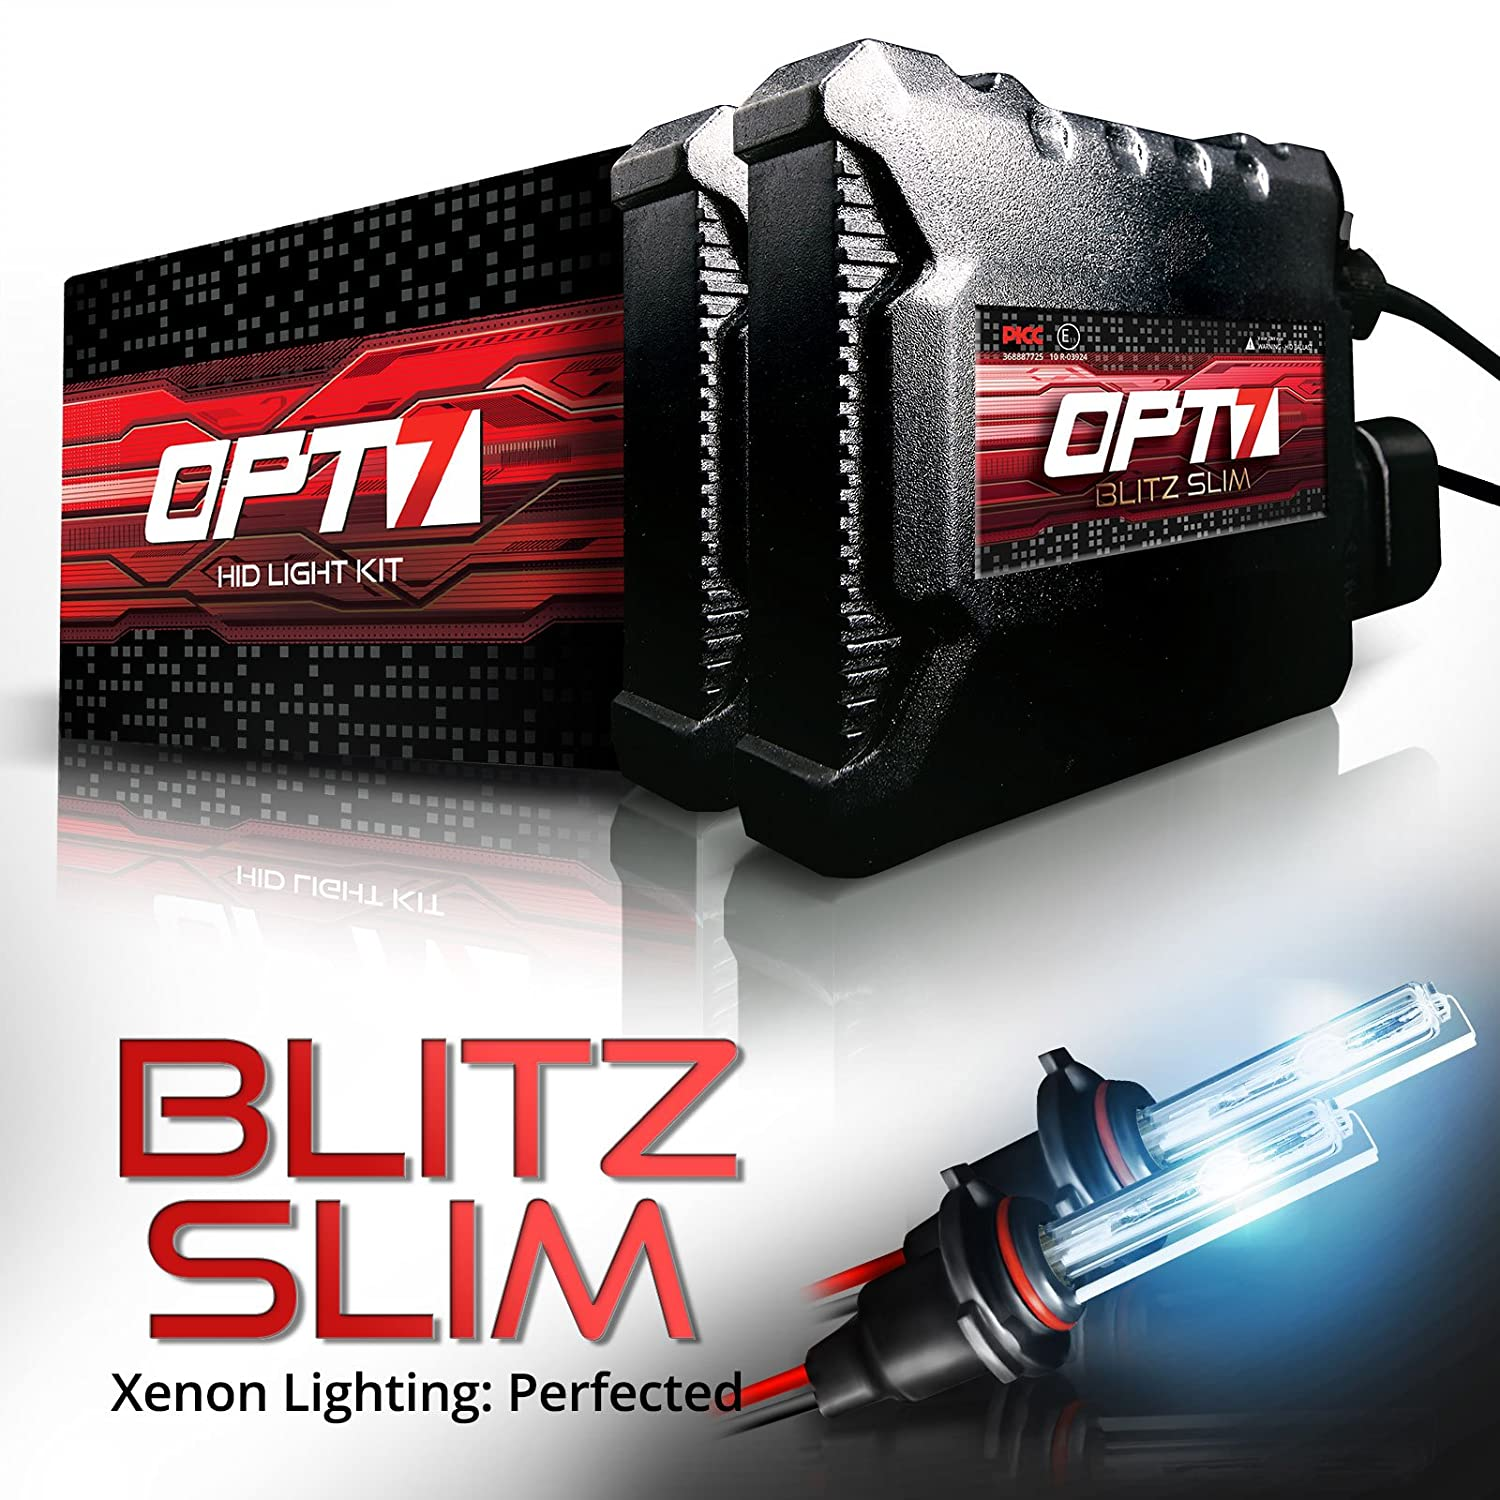 OPT7 Blitz Slim 9004 Hi-Lo HID Kit - 3.5X Brighter - 4X Longer Life - All Bulb Sizes and Colors - 2 Yr Warranty [10000K Deep Blue Xenon Light]